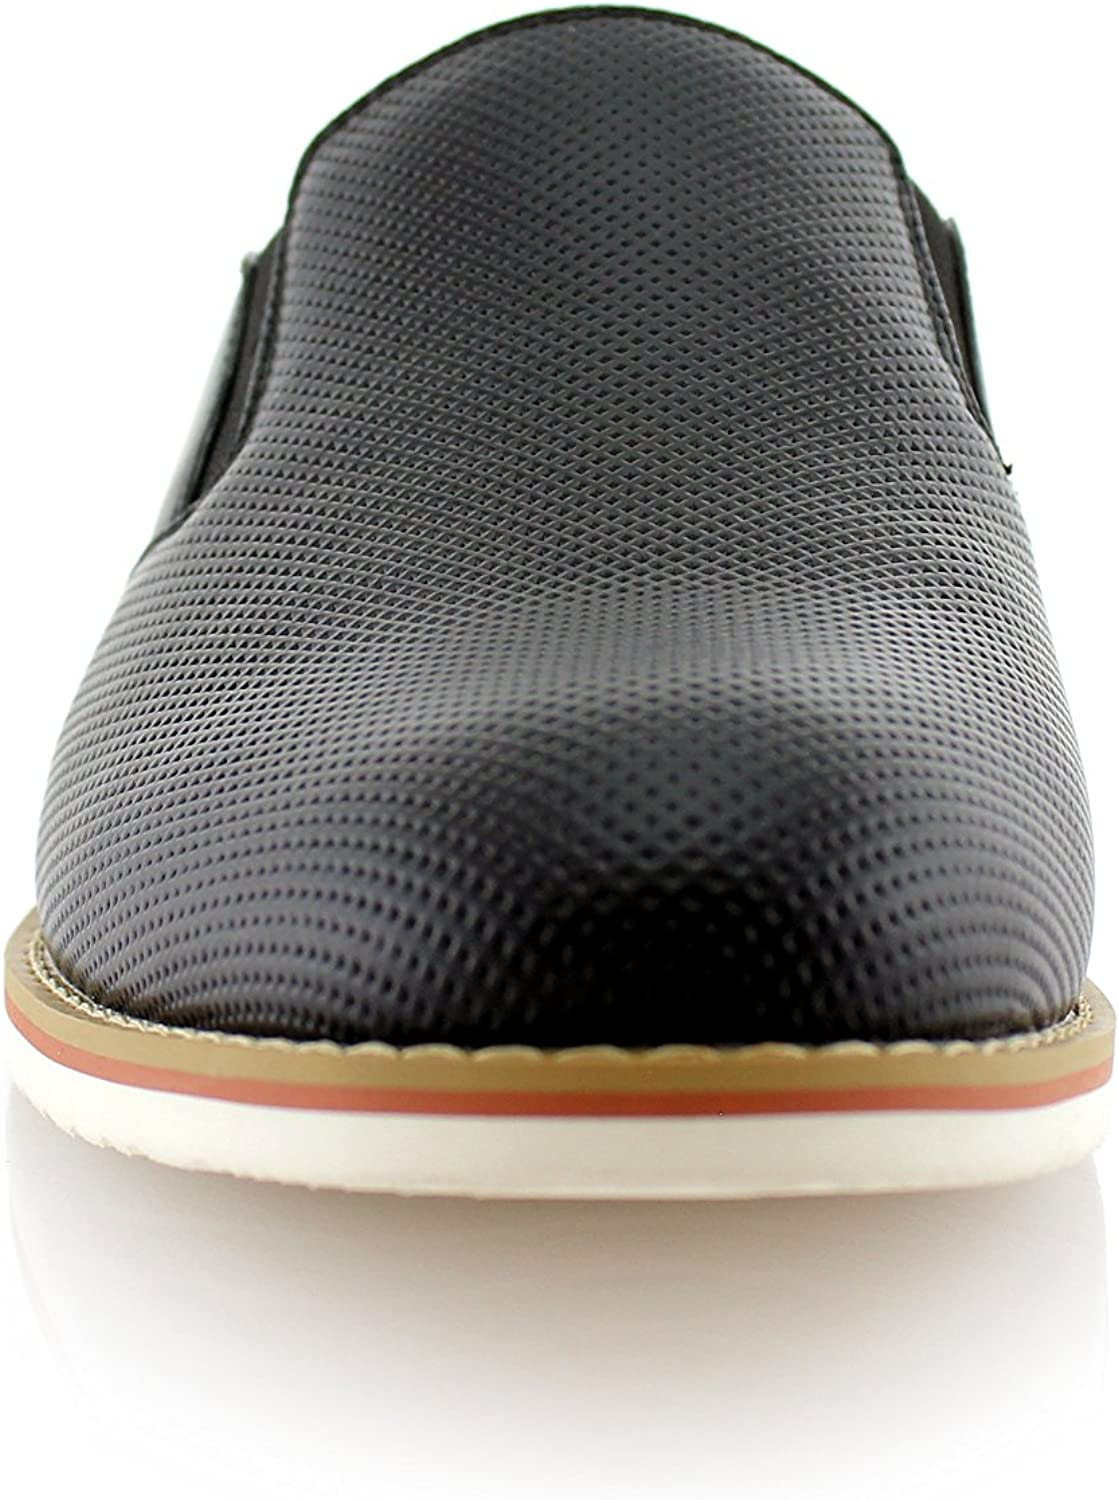 Ferro Aldo Mens Slip On Fashion Sneaker